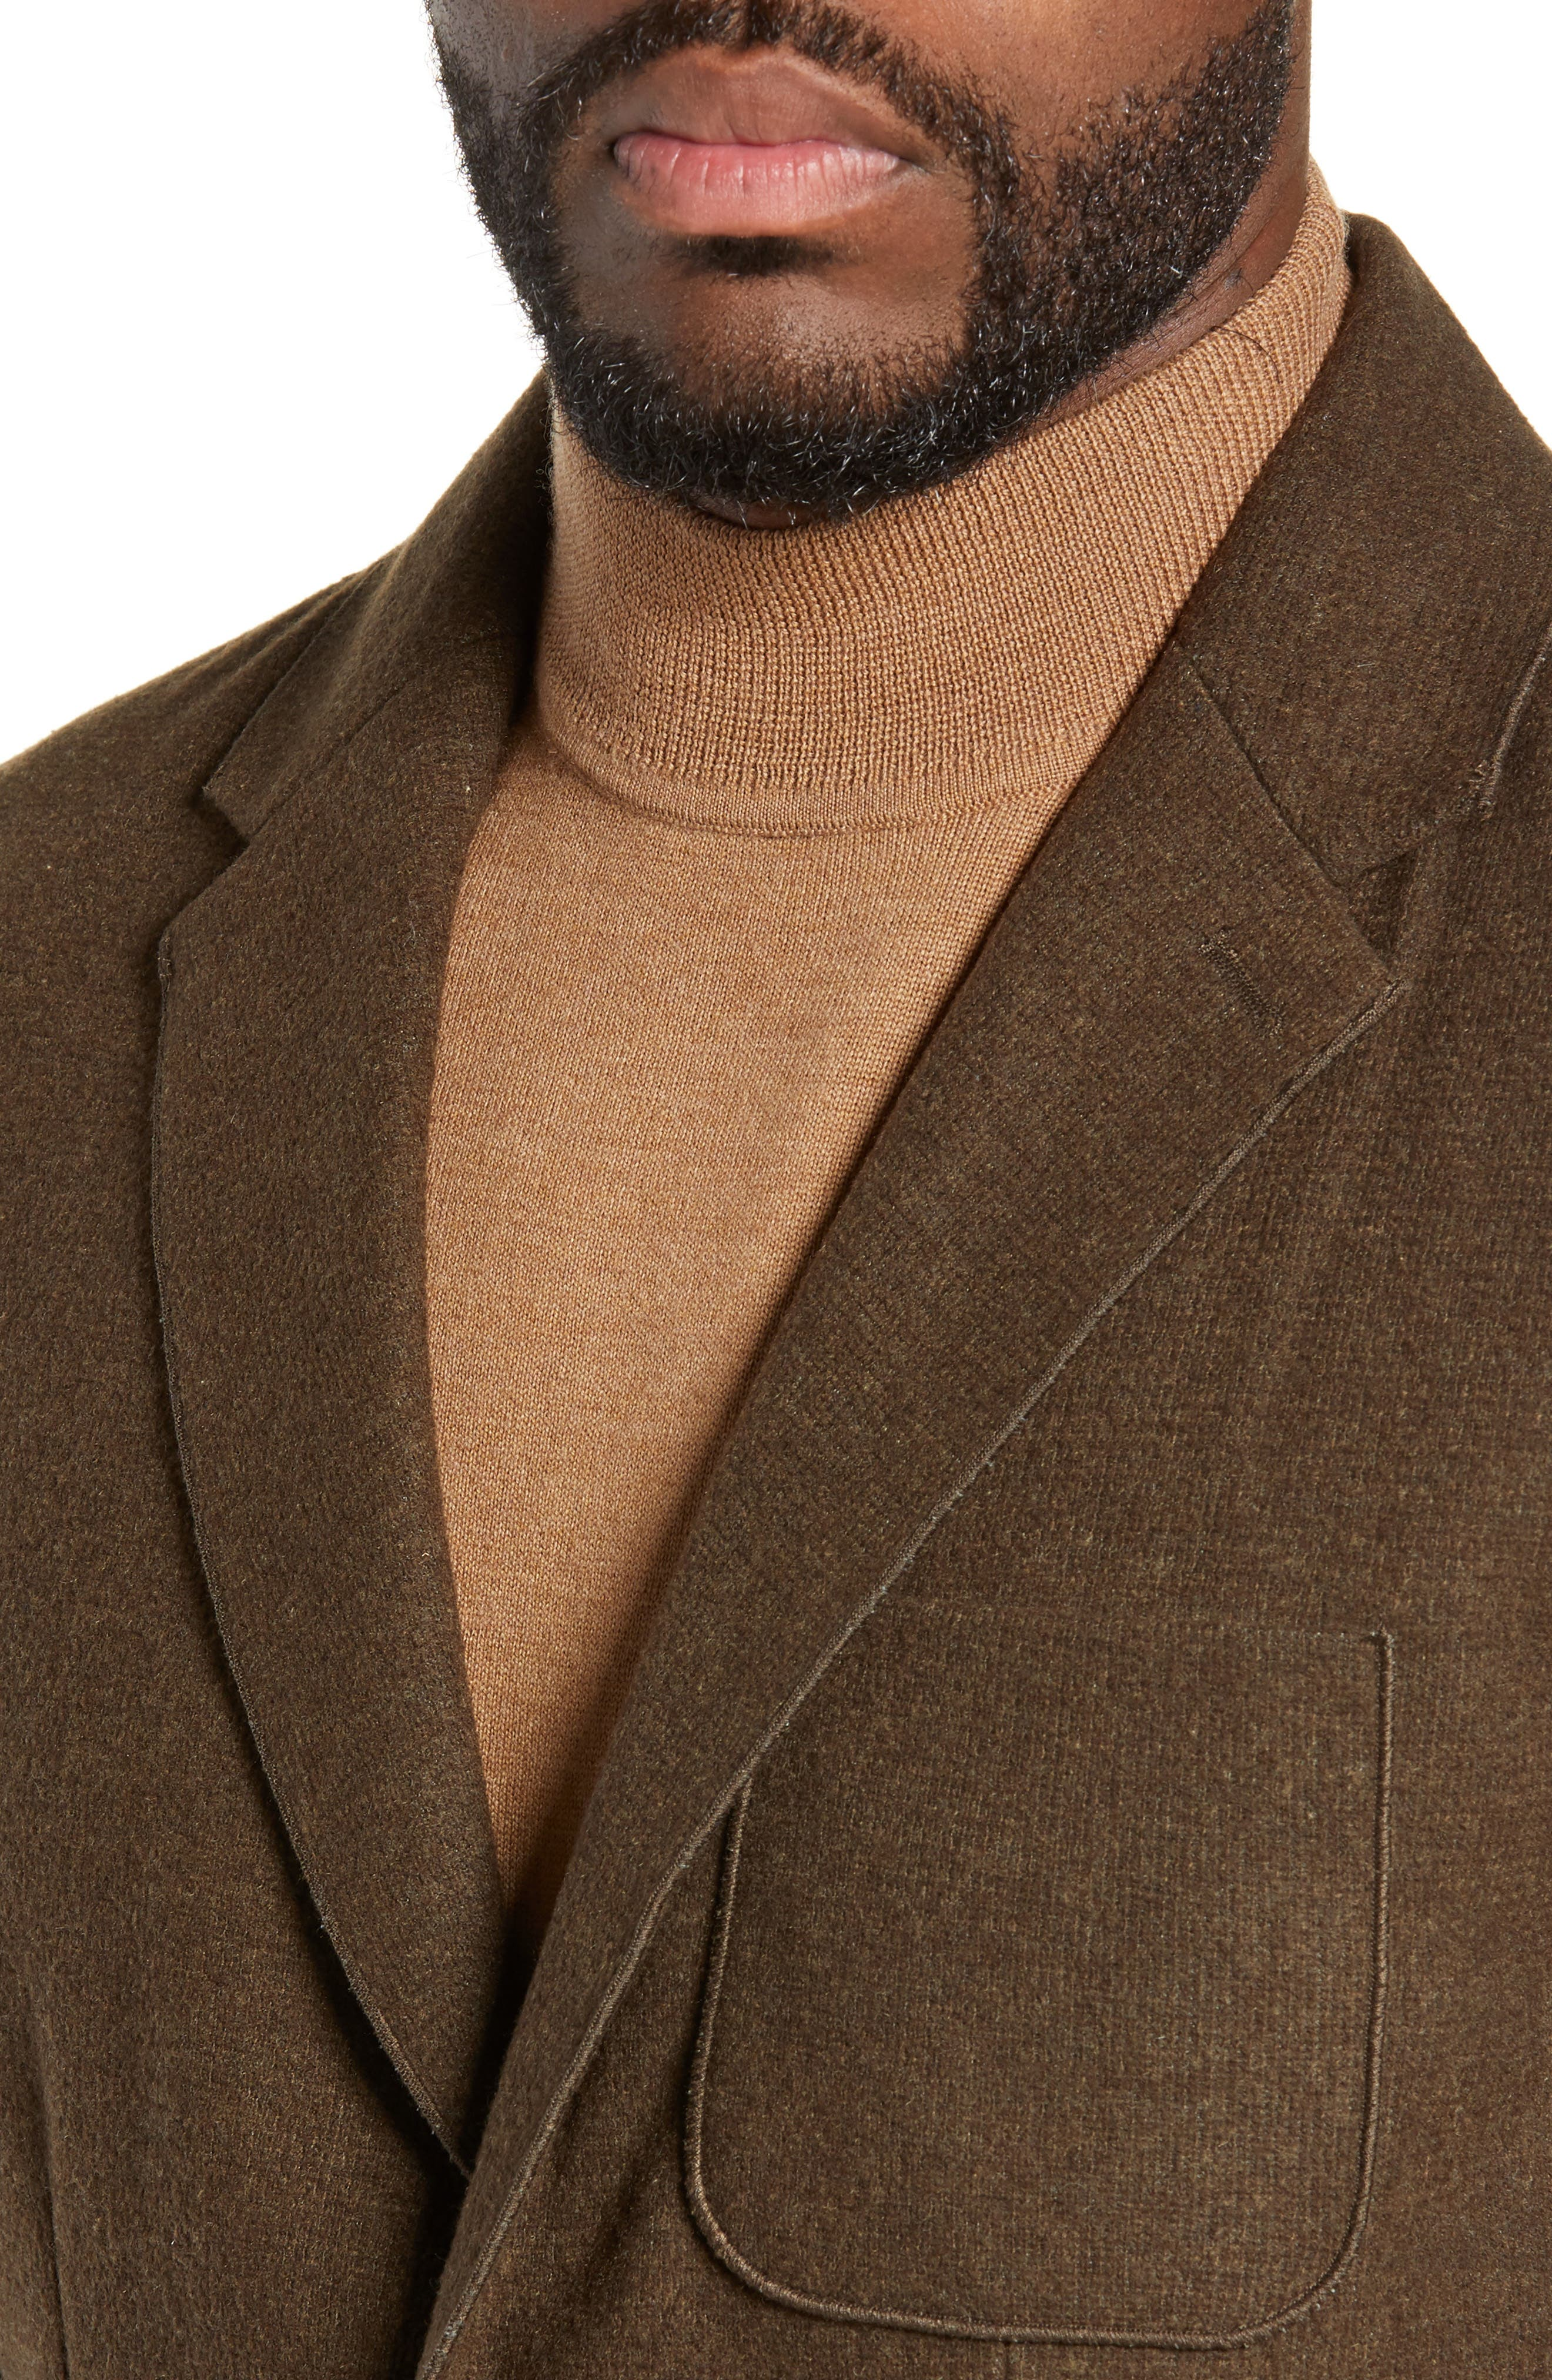 Plymouth Regular Fit Knit Sport Coat,                             Alternate thumbnail 4, color,                             BROWN